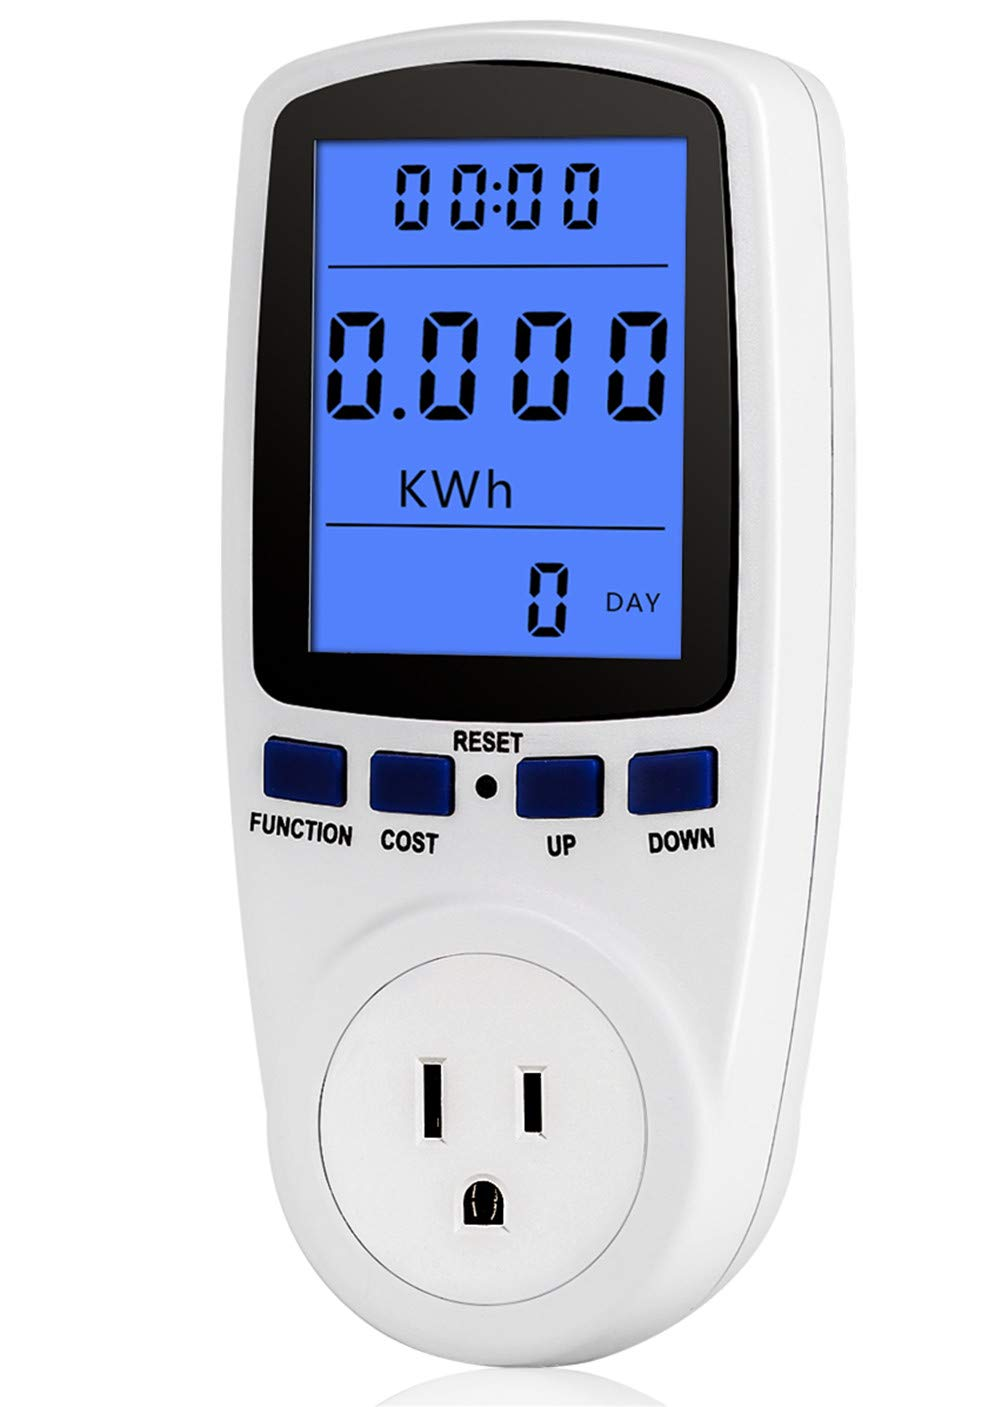 Power Meter Plug Home Energy Watt Volt Amps Wattage KWH Consumption Analyzer Electricity Usage Monitor with Digital LCD Display